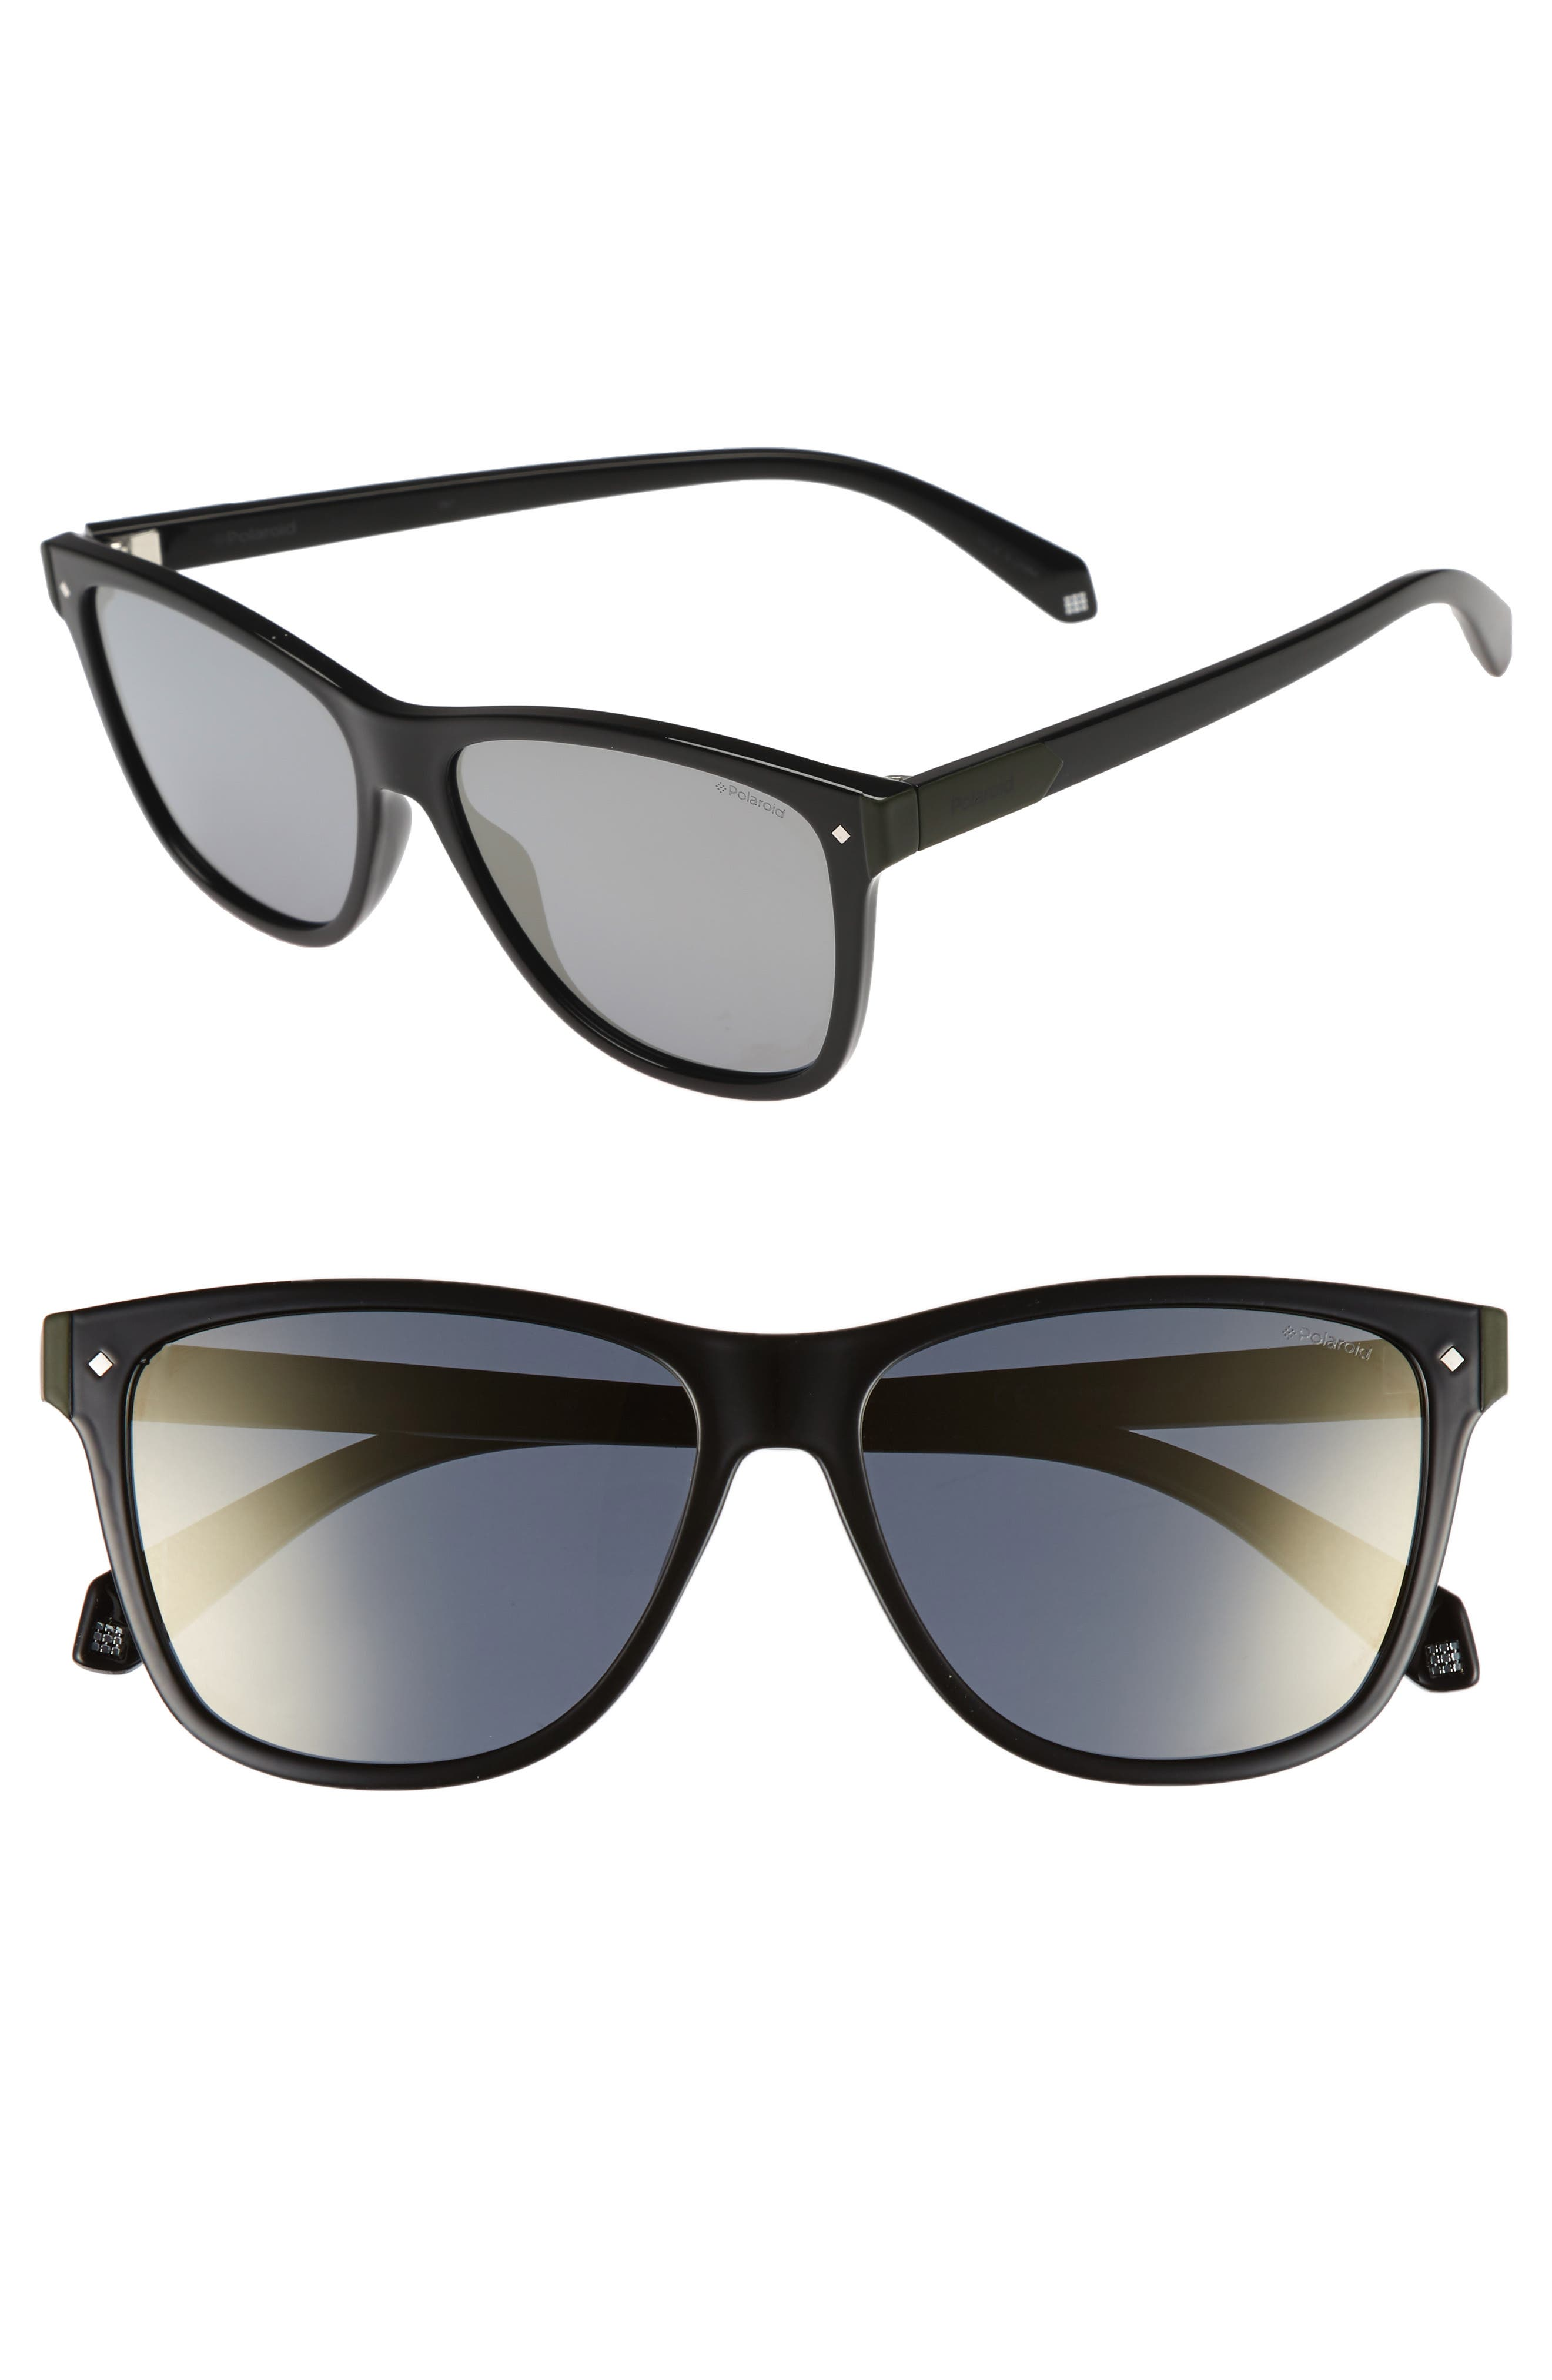 56mm Polarized Sunglasses,                         Main,                         color, 002